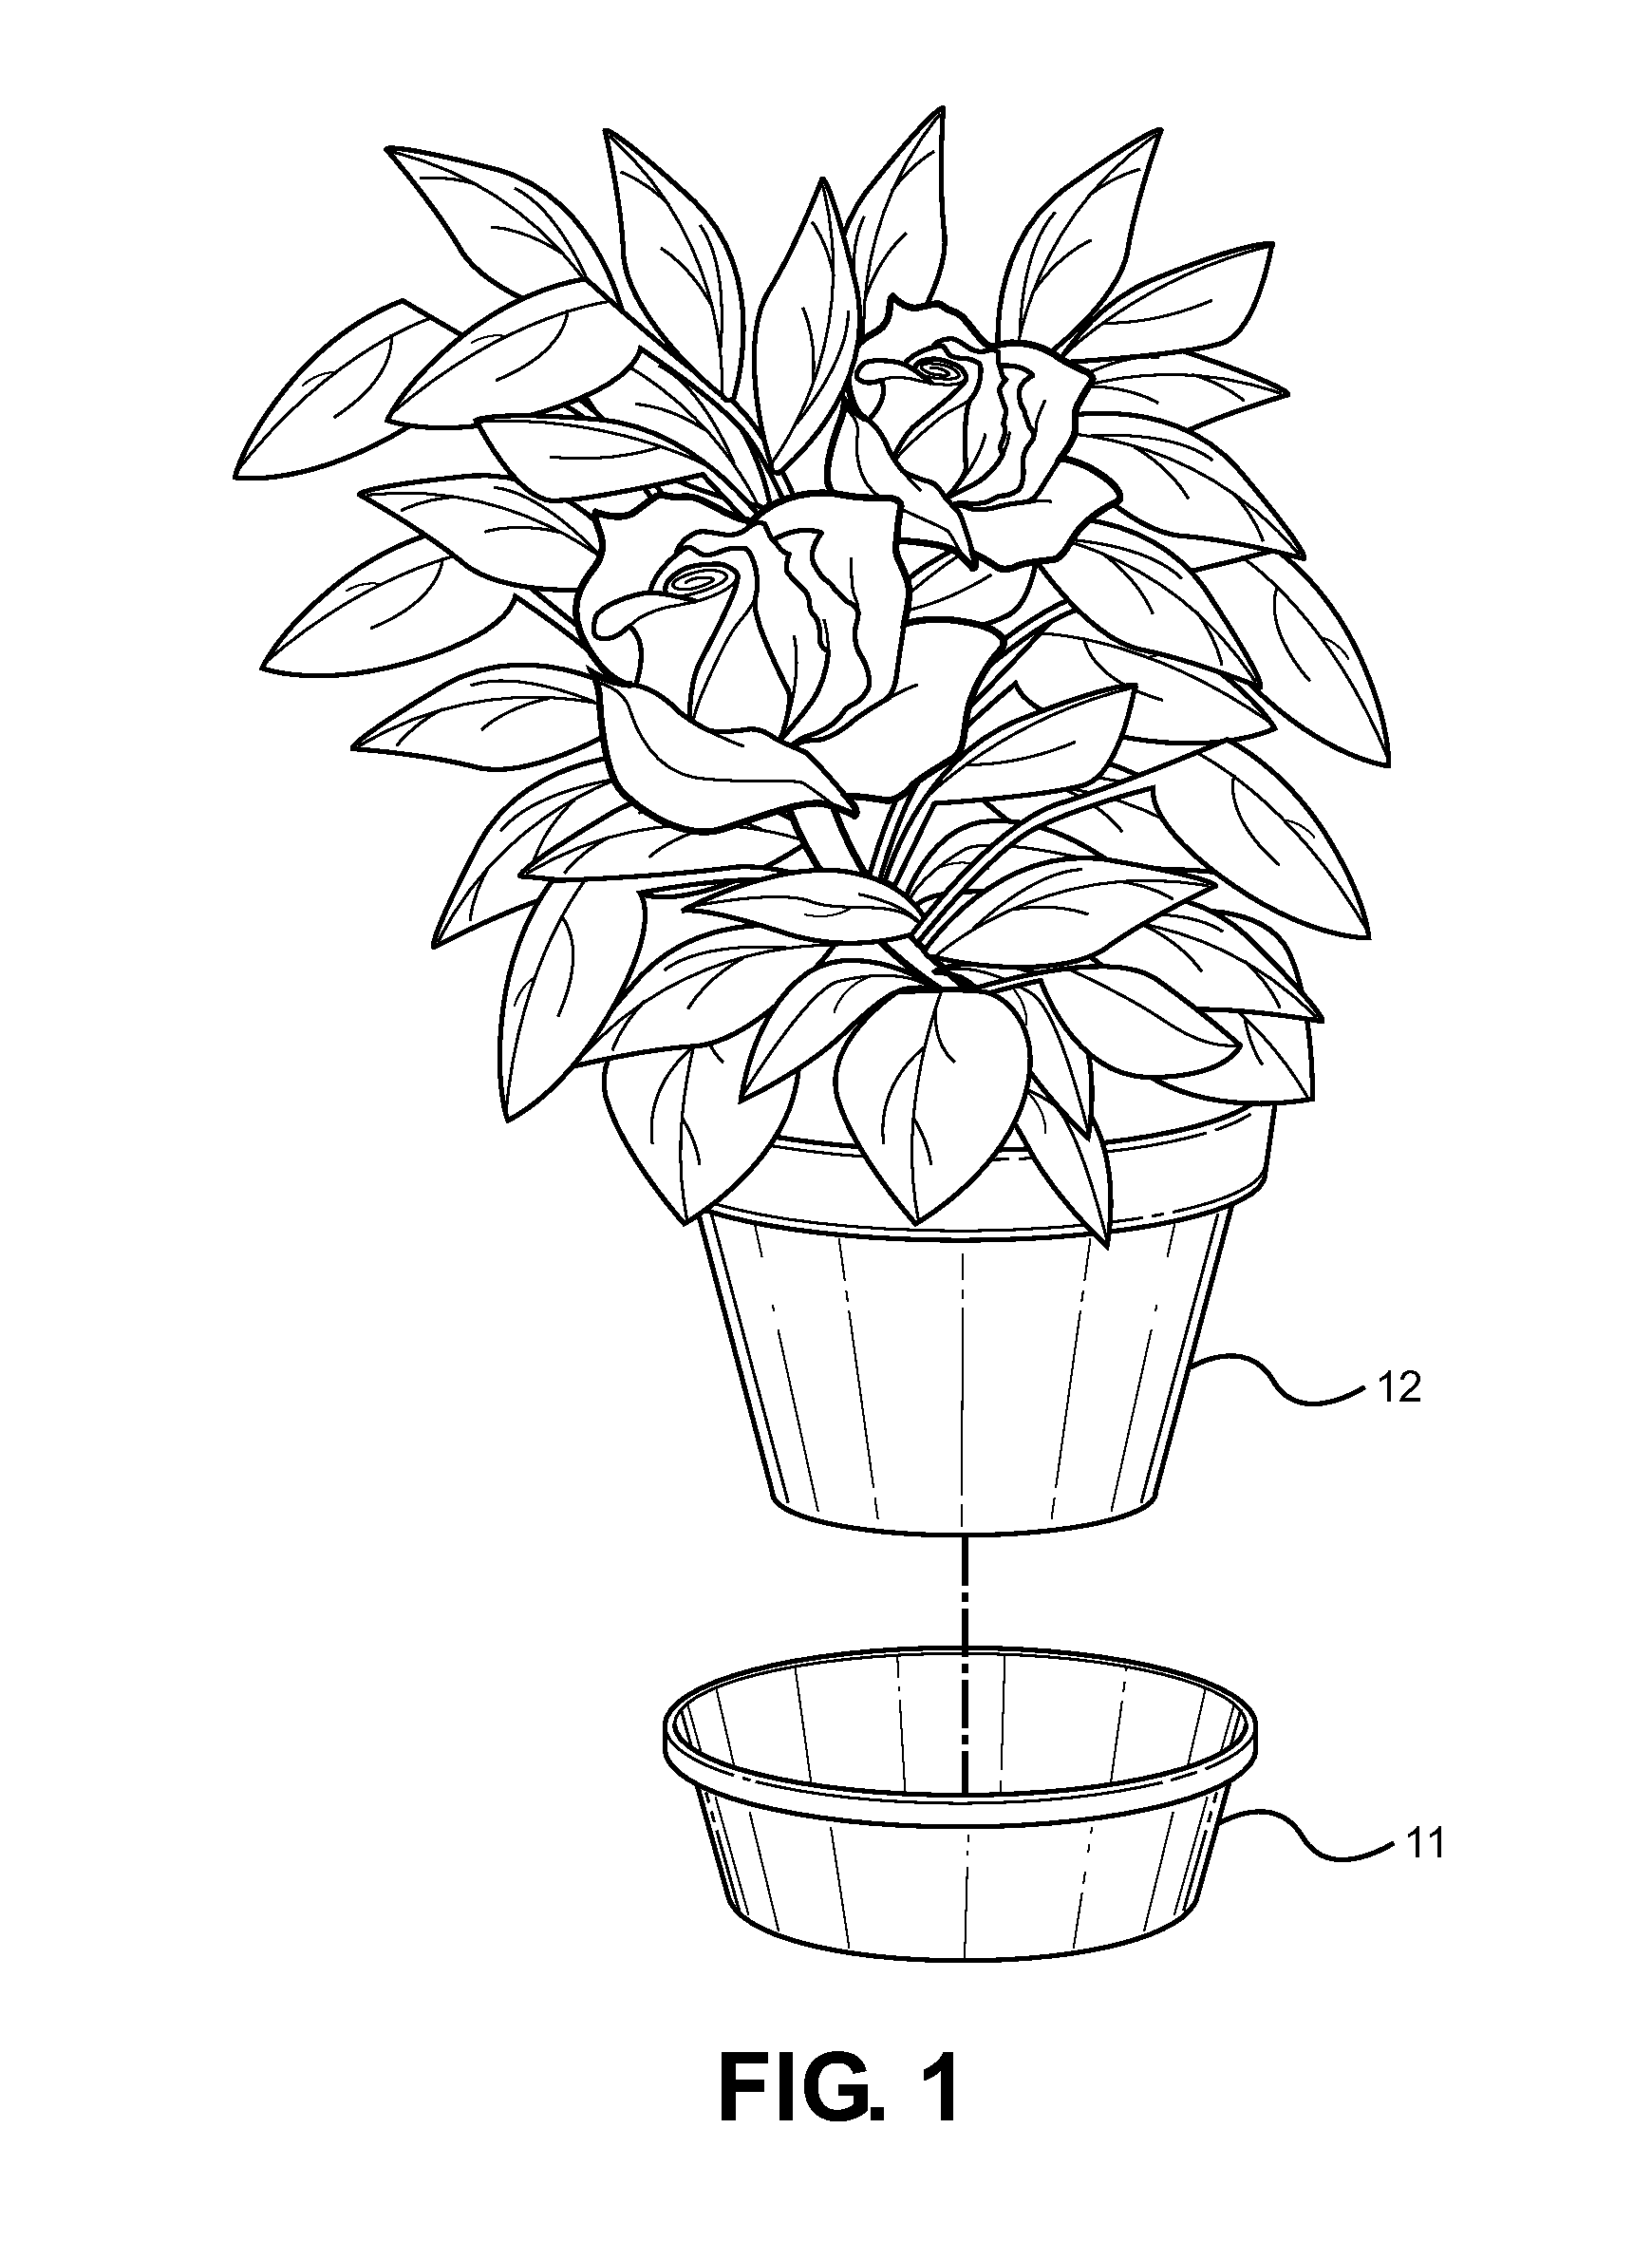 Potted plants and flowers drawing